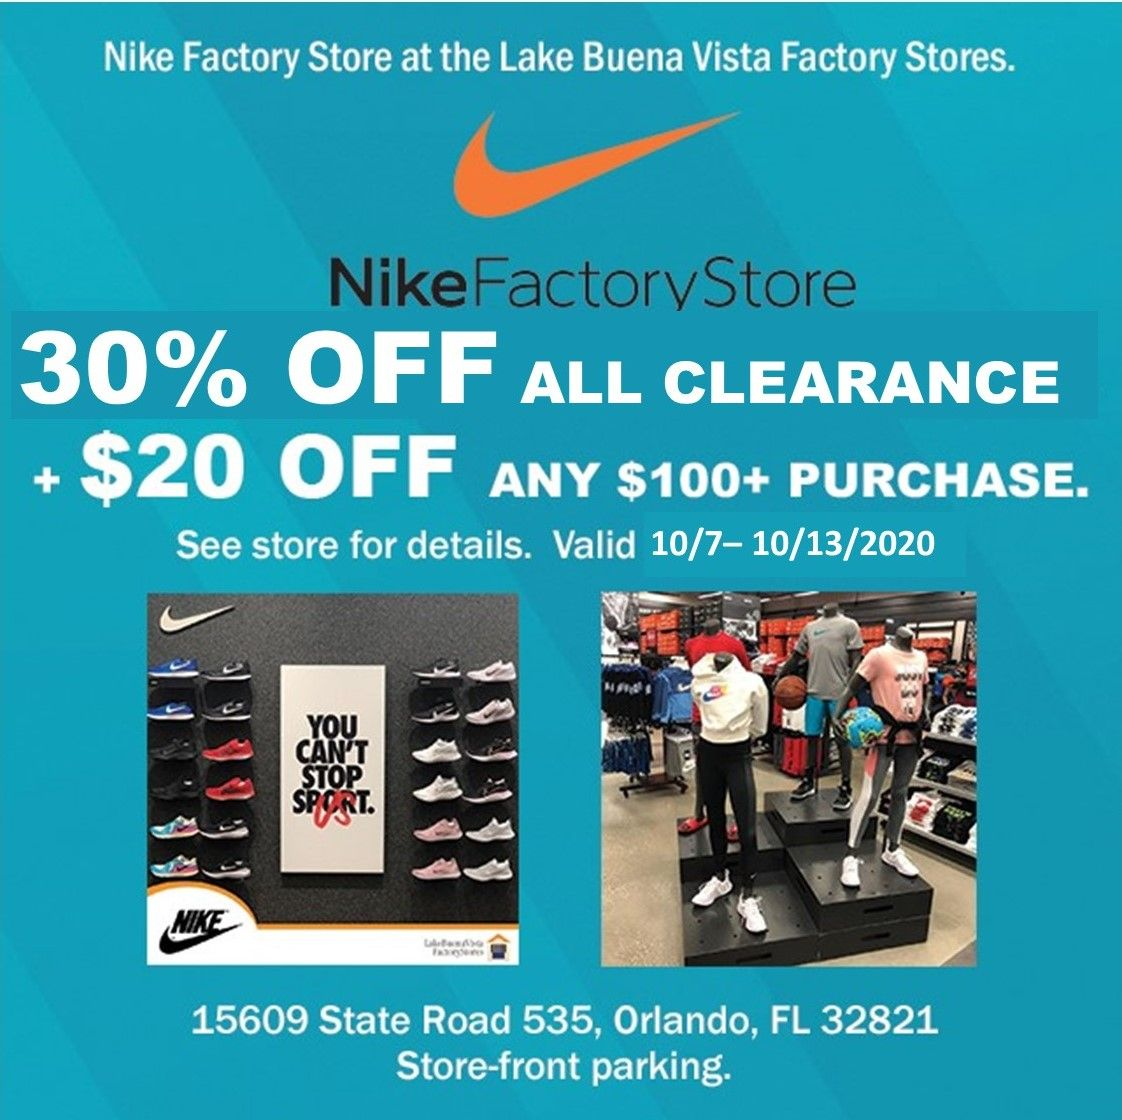 This Nike Factory Store Is A Must Shop At The Lake Buena Vista Factory Stores Easy In And Out And Store Front Park Nike Factory Lake Buena Vista Factory Store